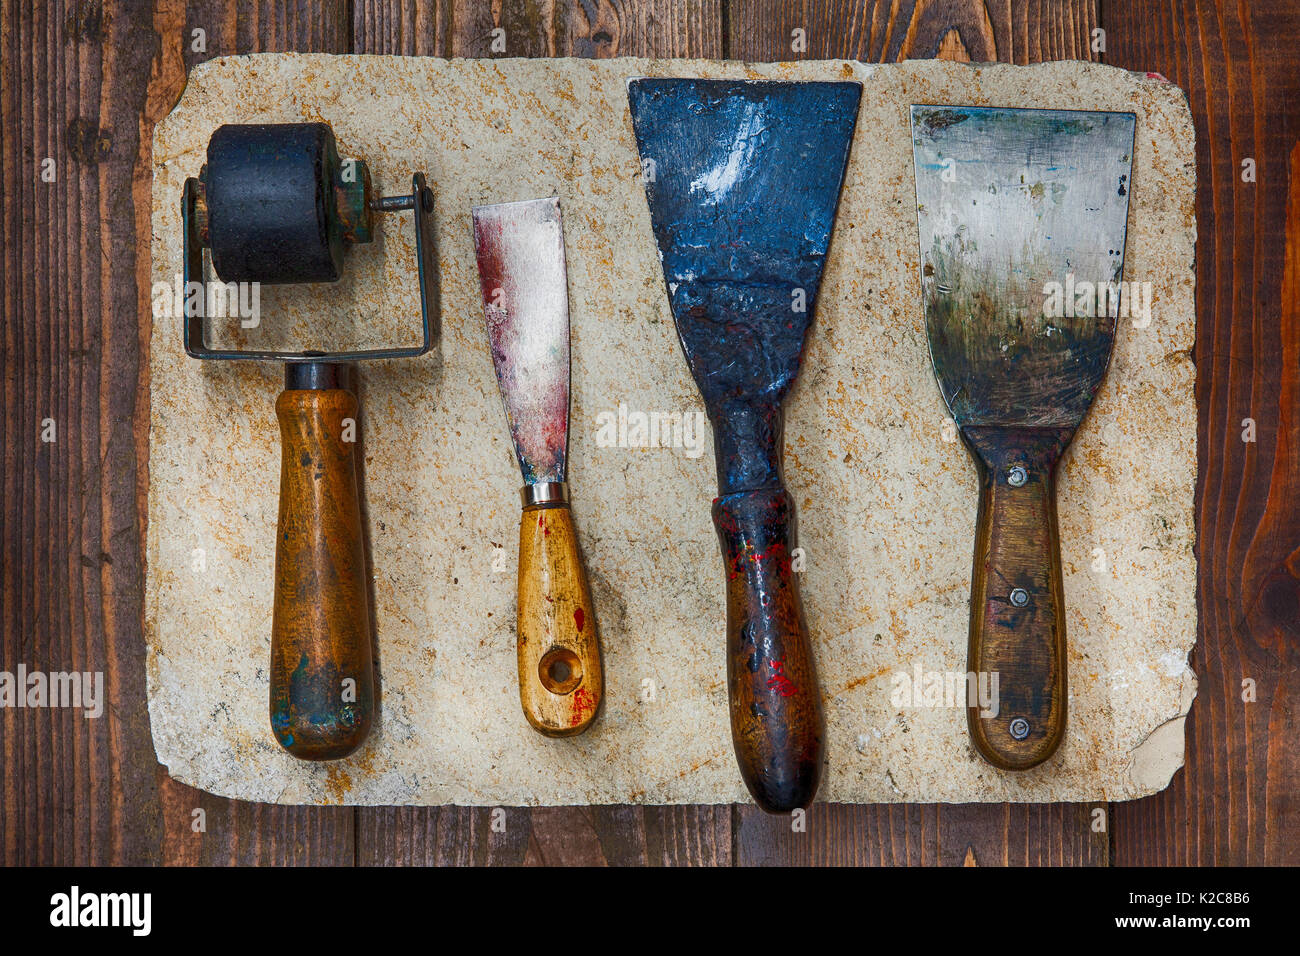 Retro design tools for artist workshop: rubber roller, different size putty knives on stone plate and wooden background. Techical service diy tools, decorator accessories concept. soft focus, up view - Stock Image